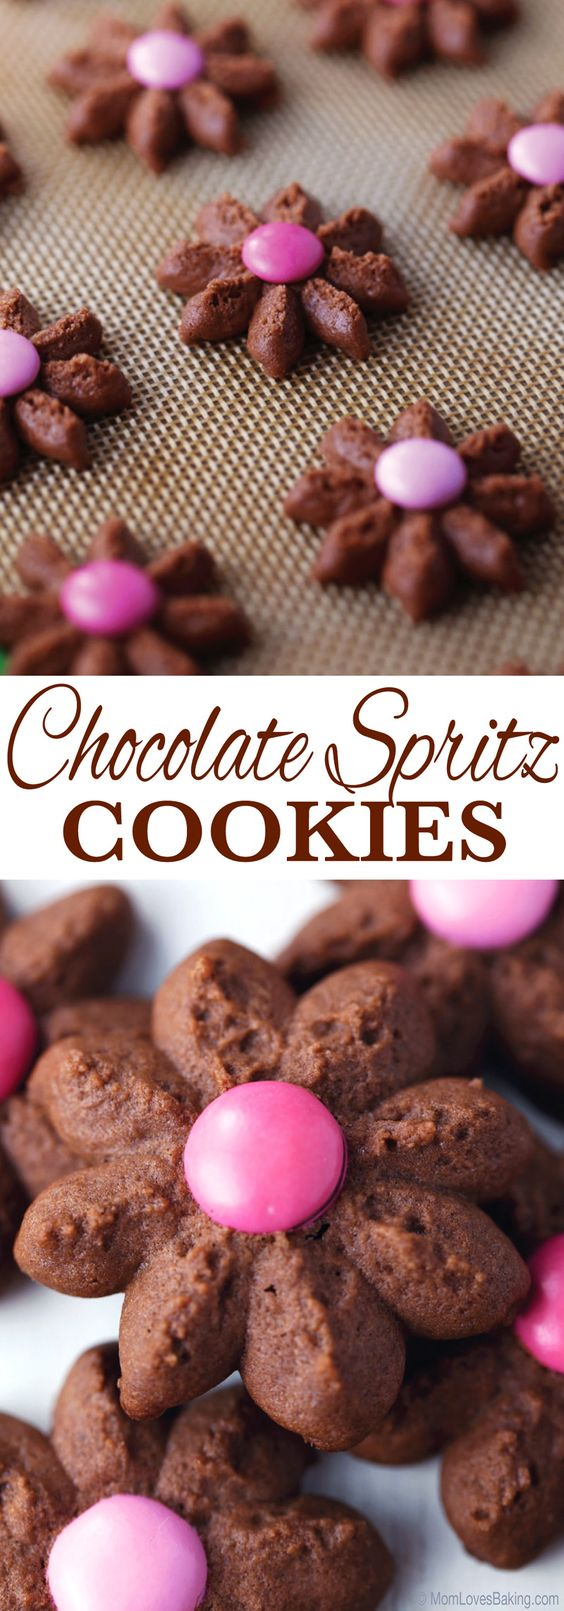 Chocolate Spritz Cookies - buttery, chocolatey and delicious. Easy to make with a cookie press and perfect for a ladies tea or birthday party. Find the recipe on MomLovesBaking.com